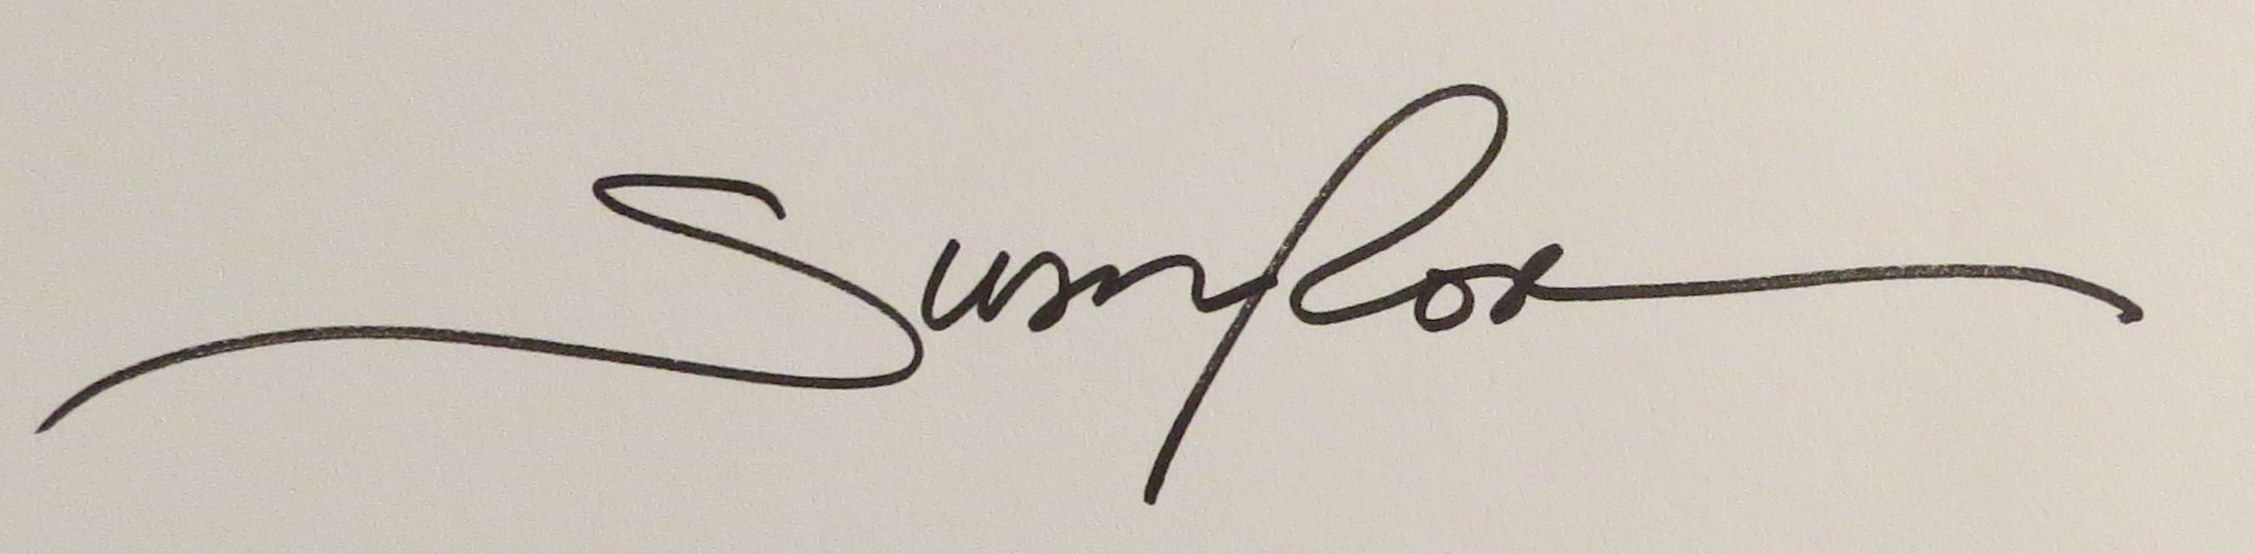 Susan Rose Signature